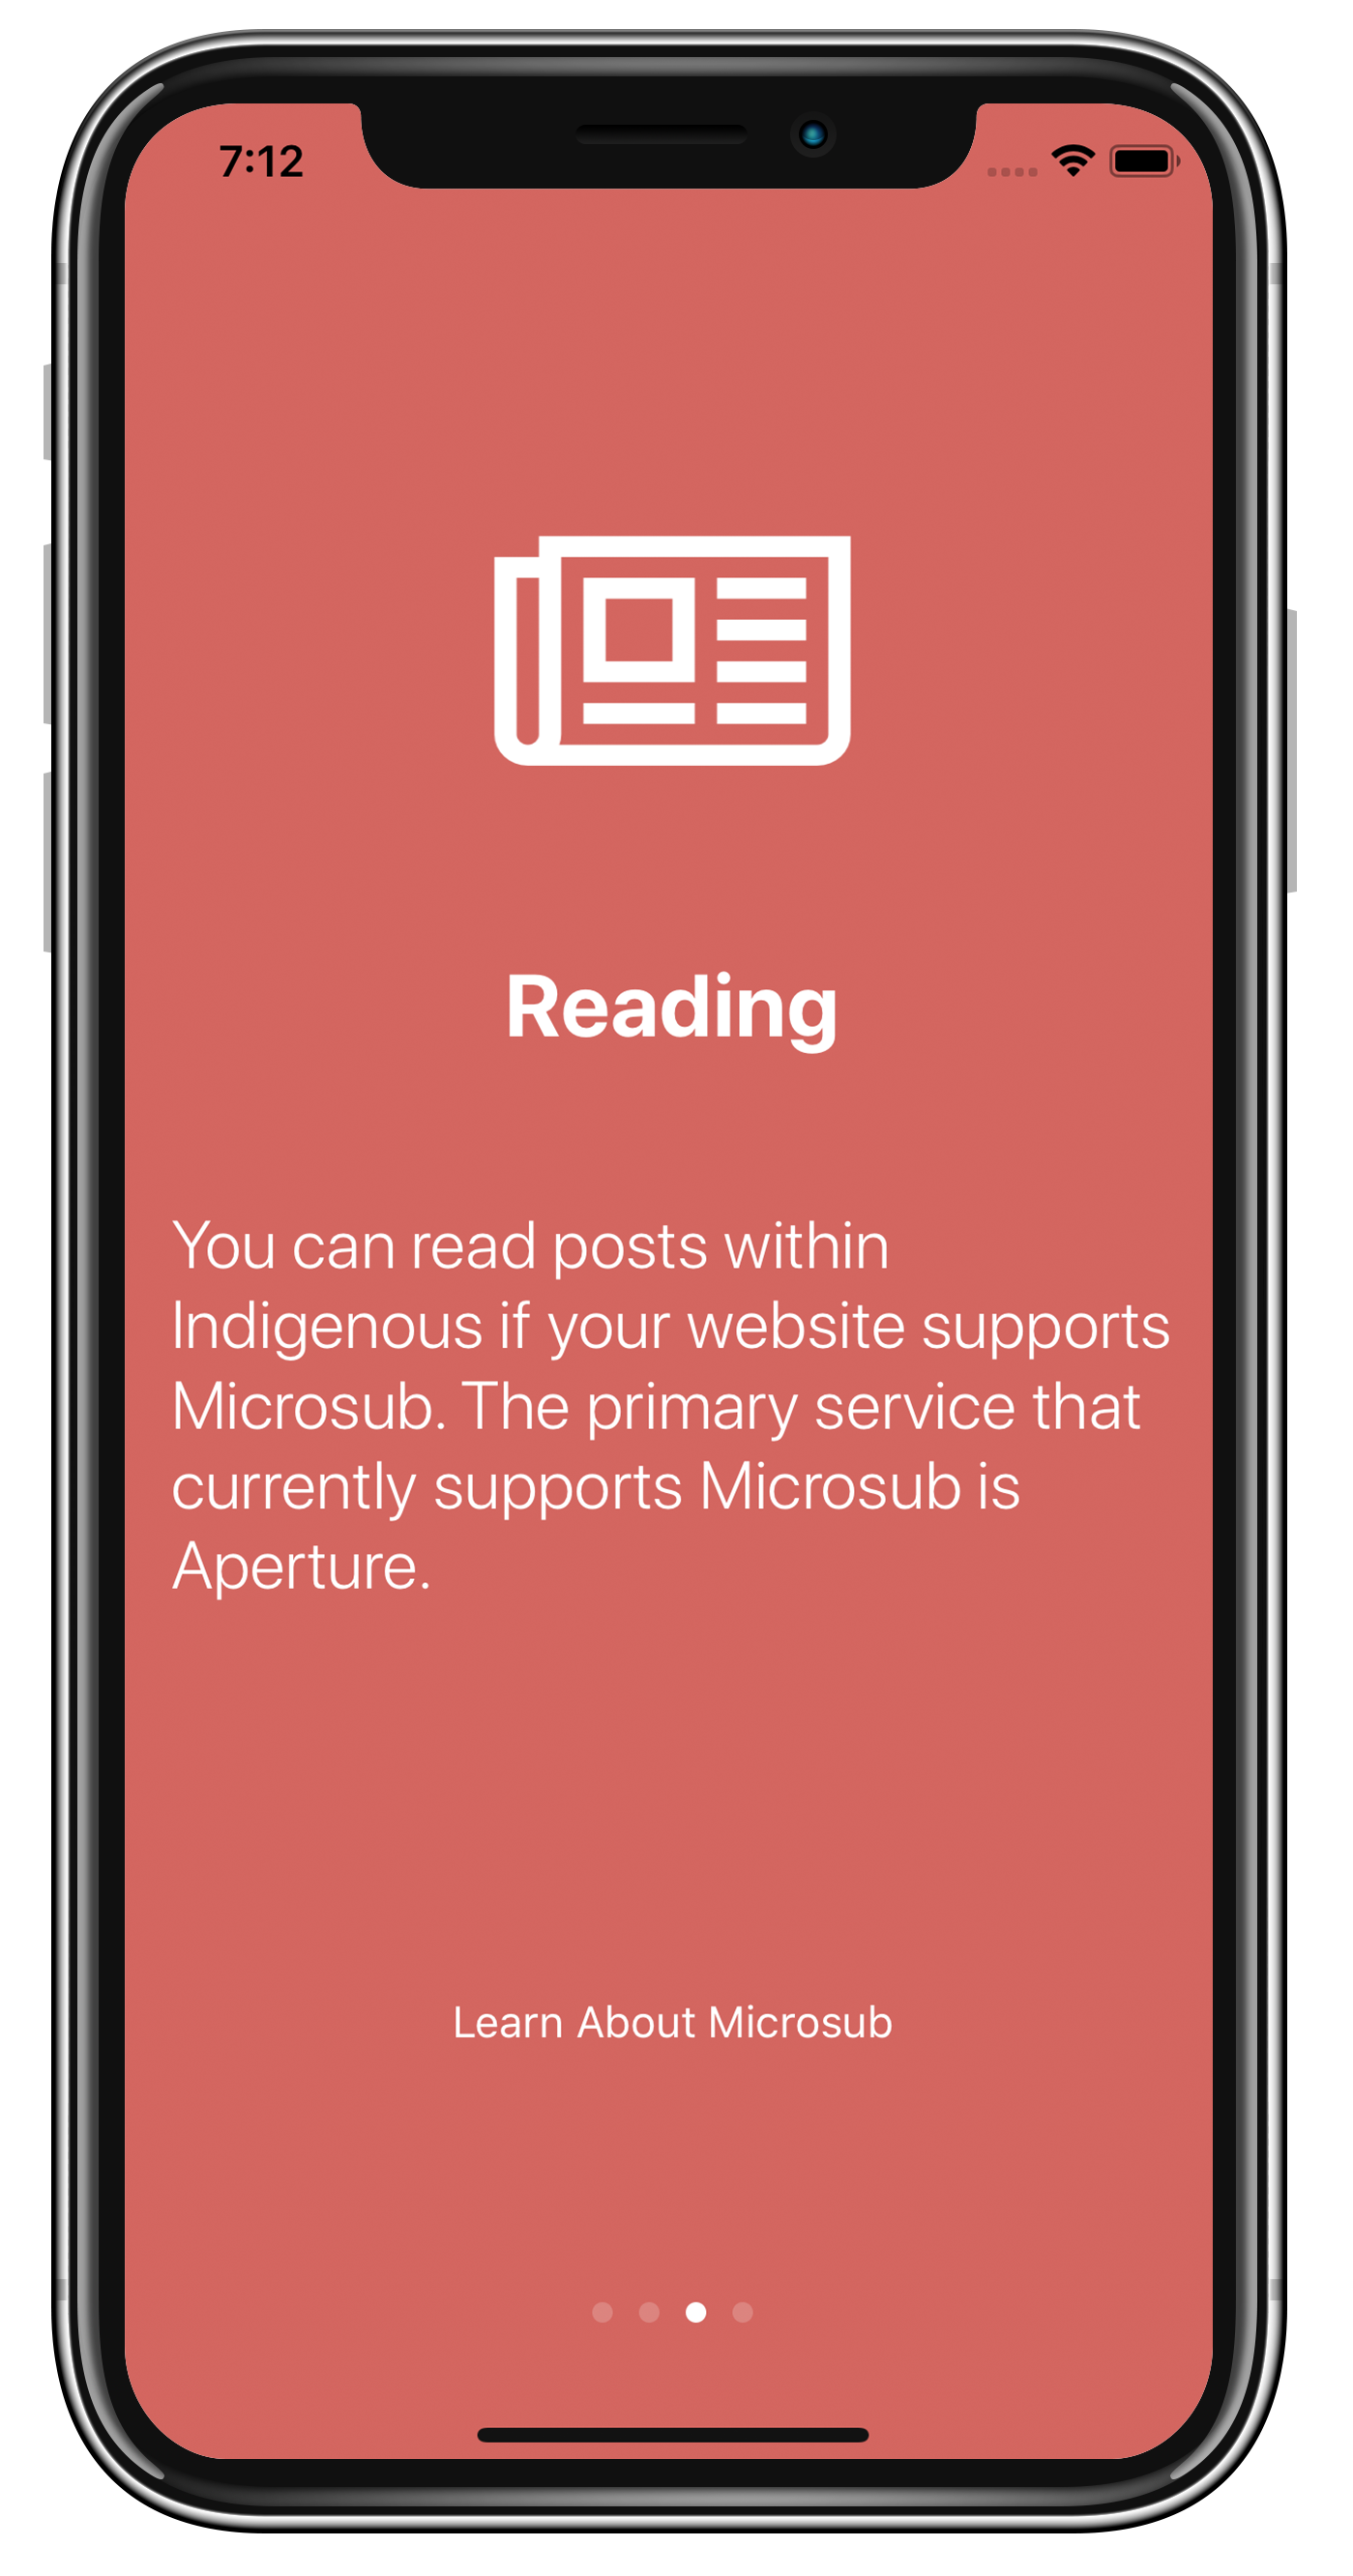 Onboarding Screen about Microsub